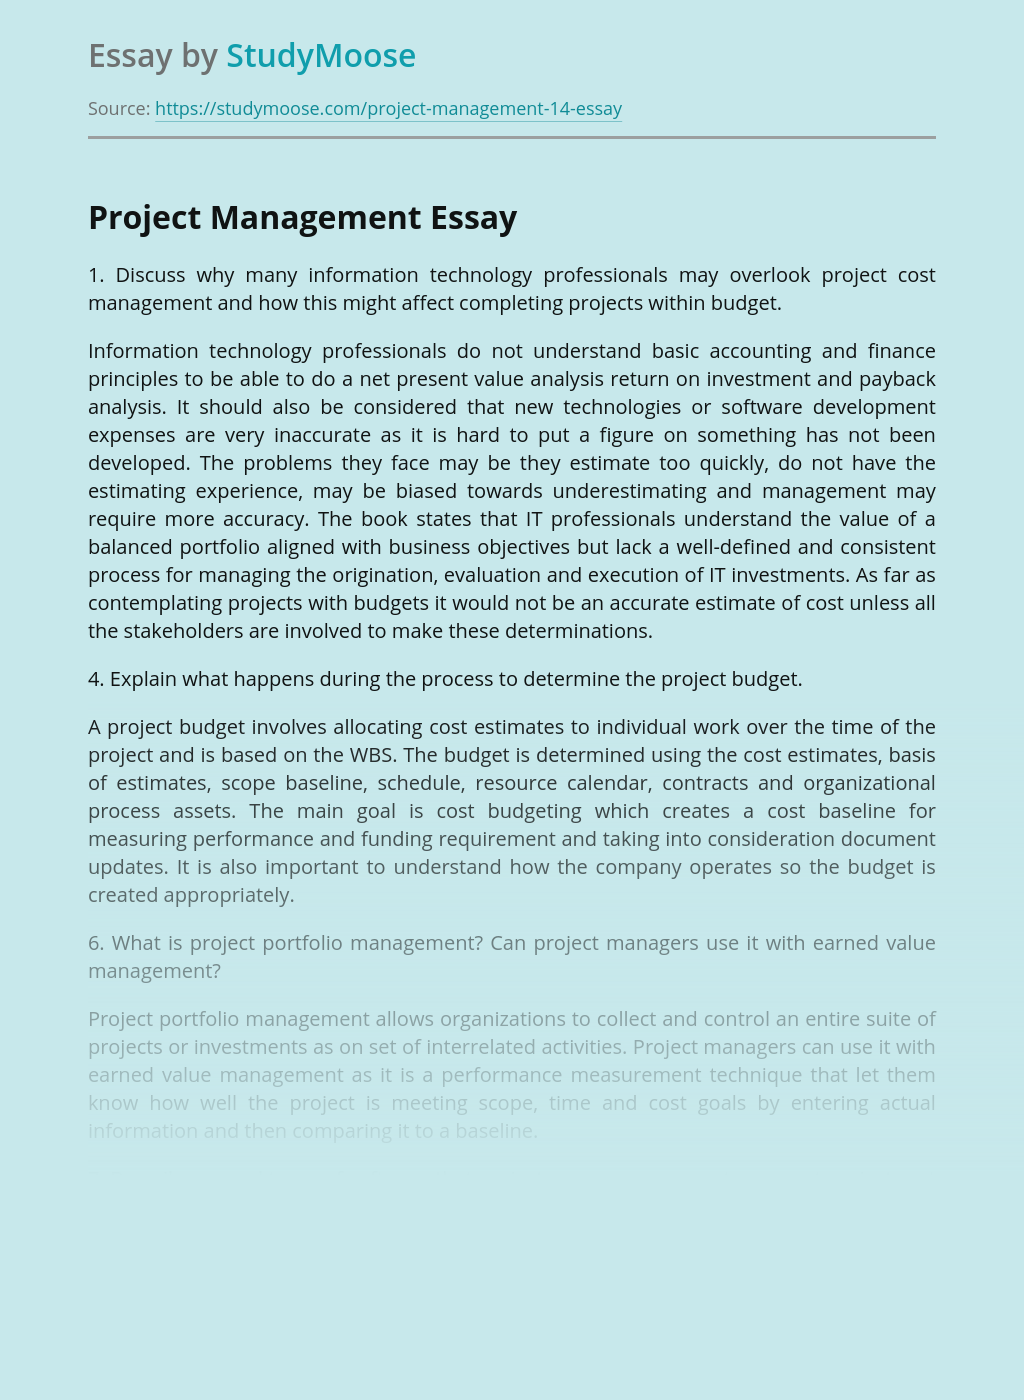 Project Management for Completing Projects within Budget